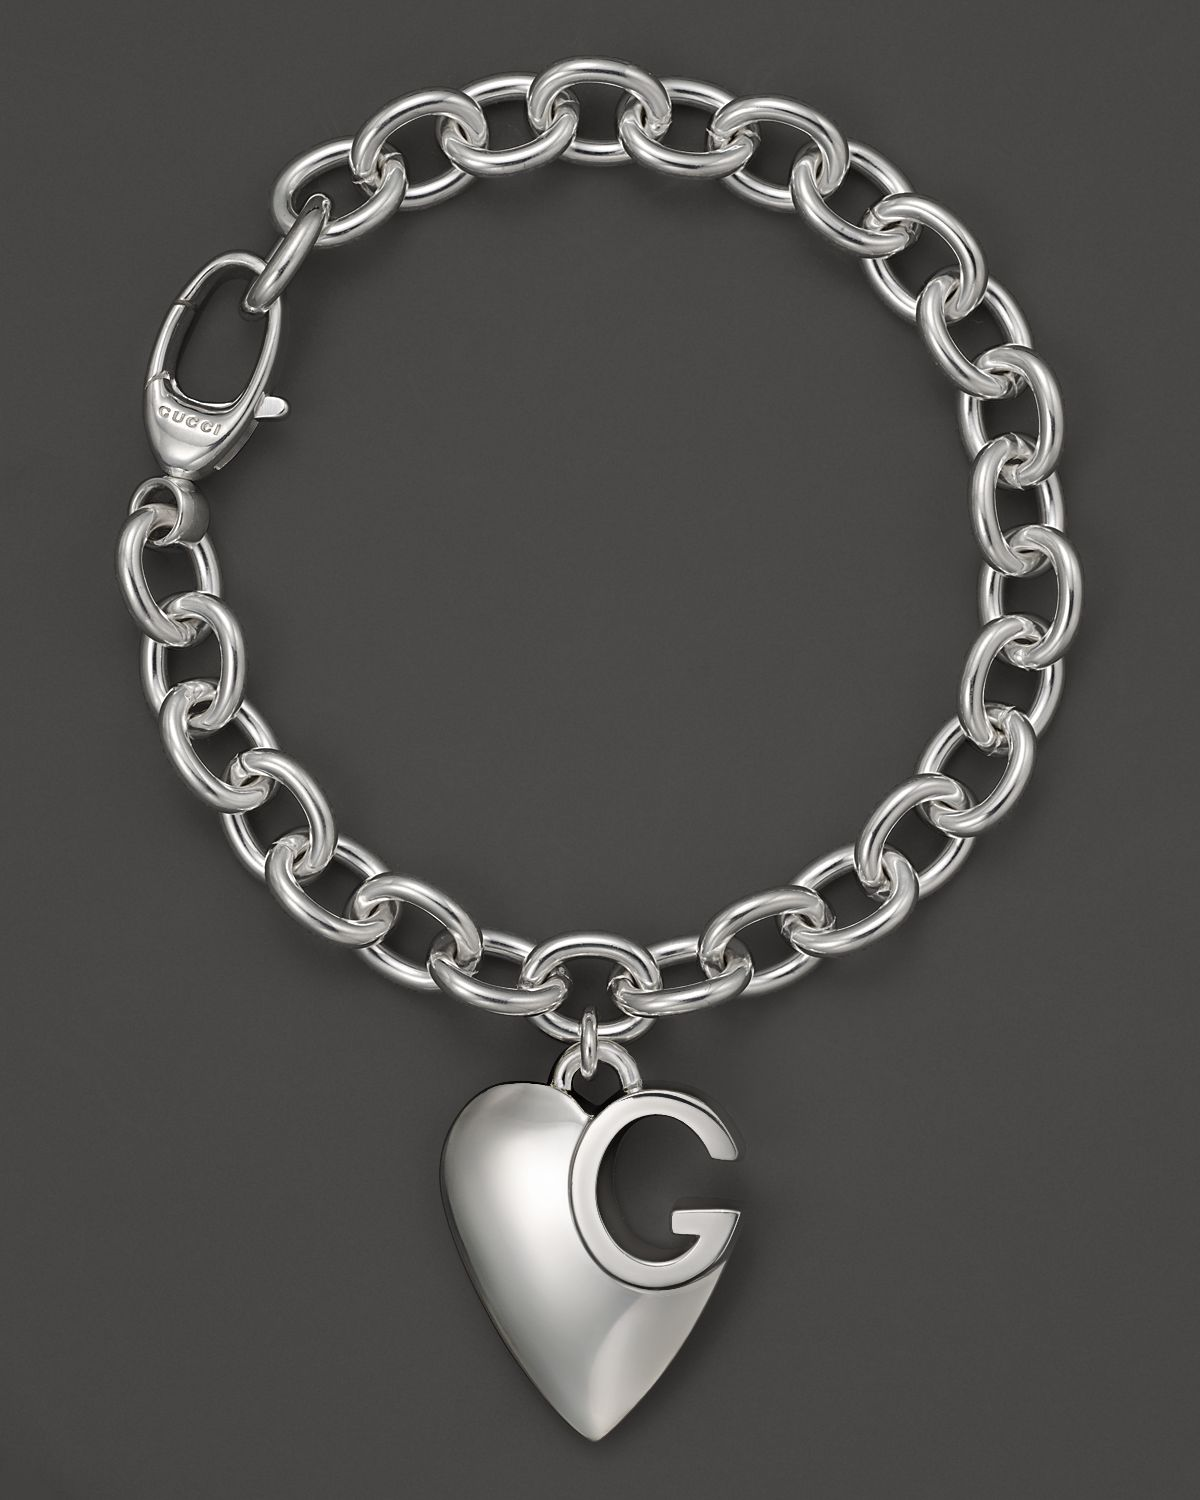 8ca5211e5 Gucci Sterling Silver Lucky Charms Bracelet With Heart Charm In